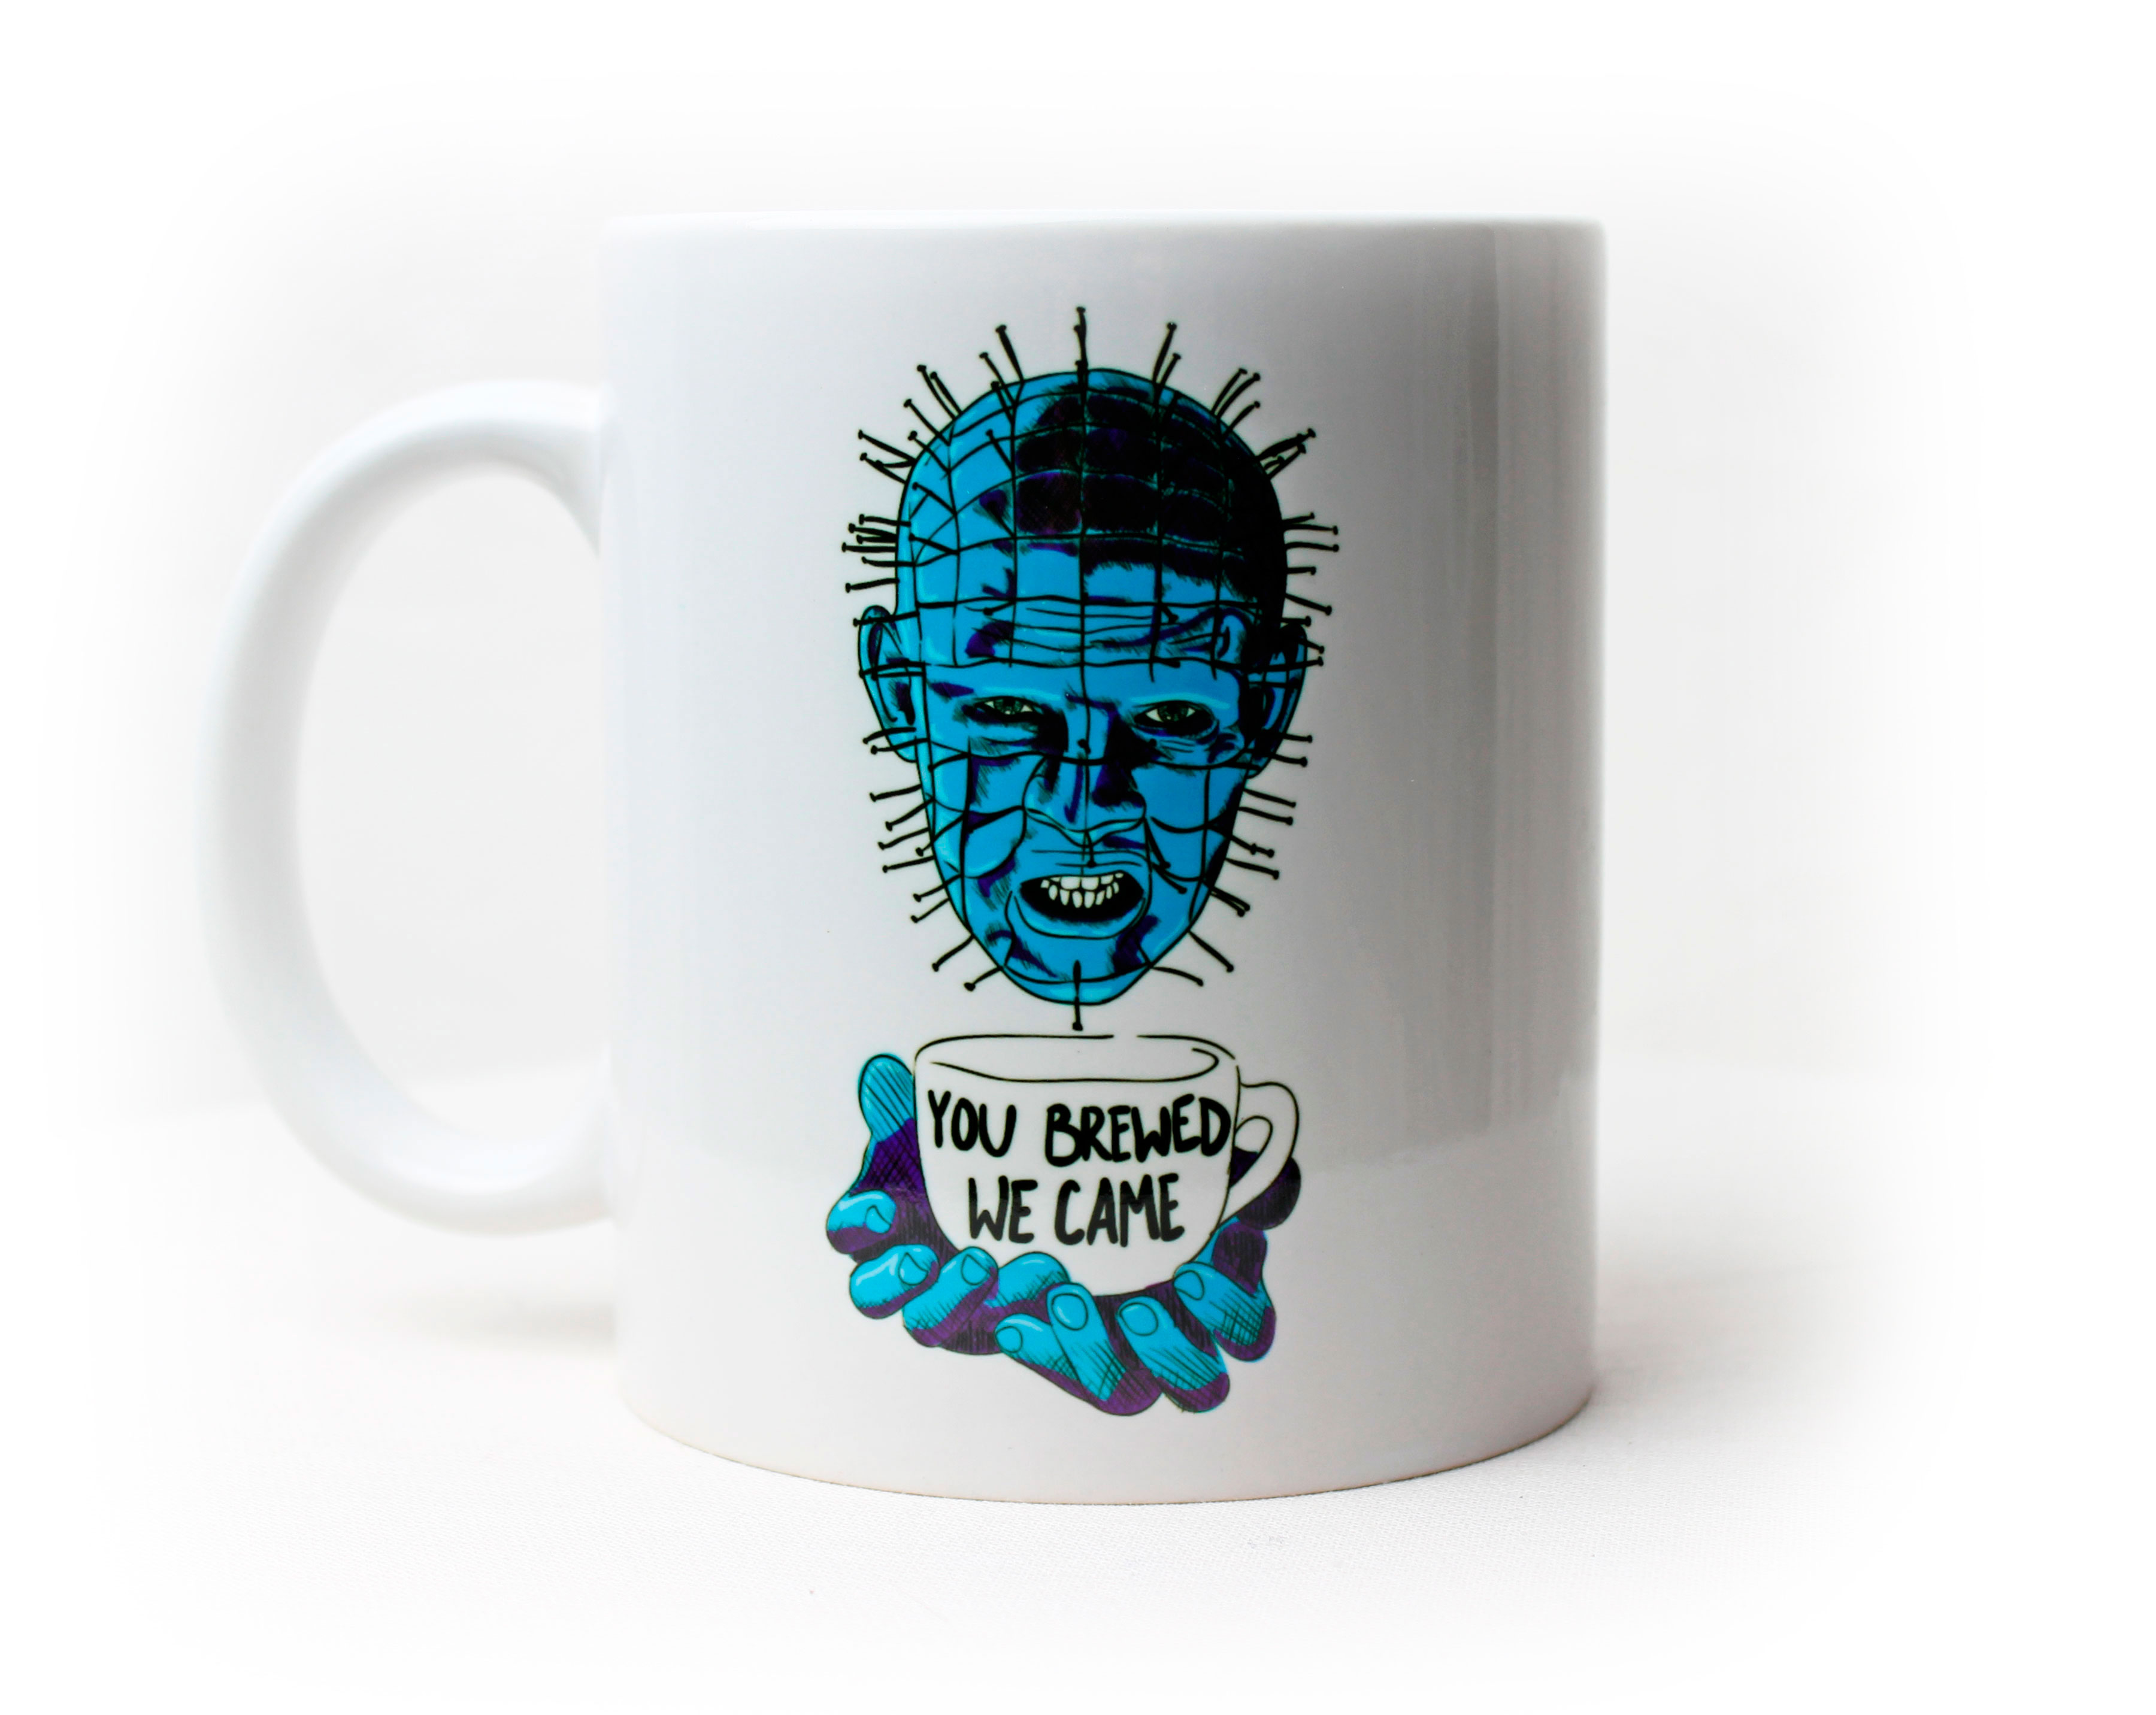 From Visions BrewedWe Exhumed You CameCoffee Mug l1Jc3uTFK